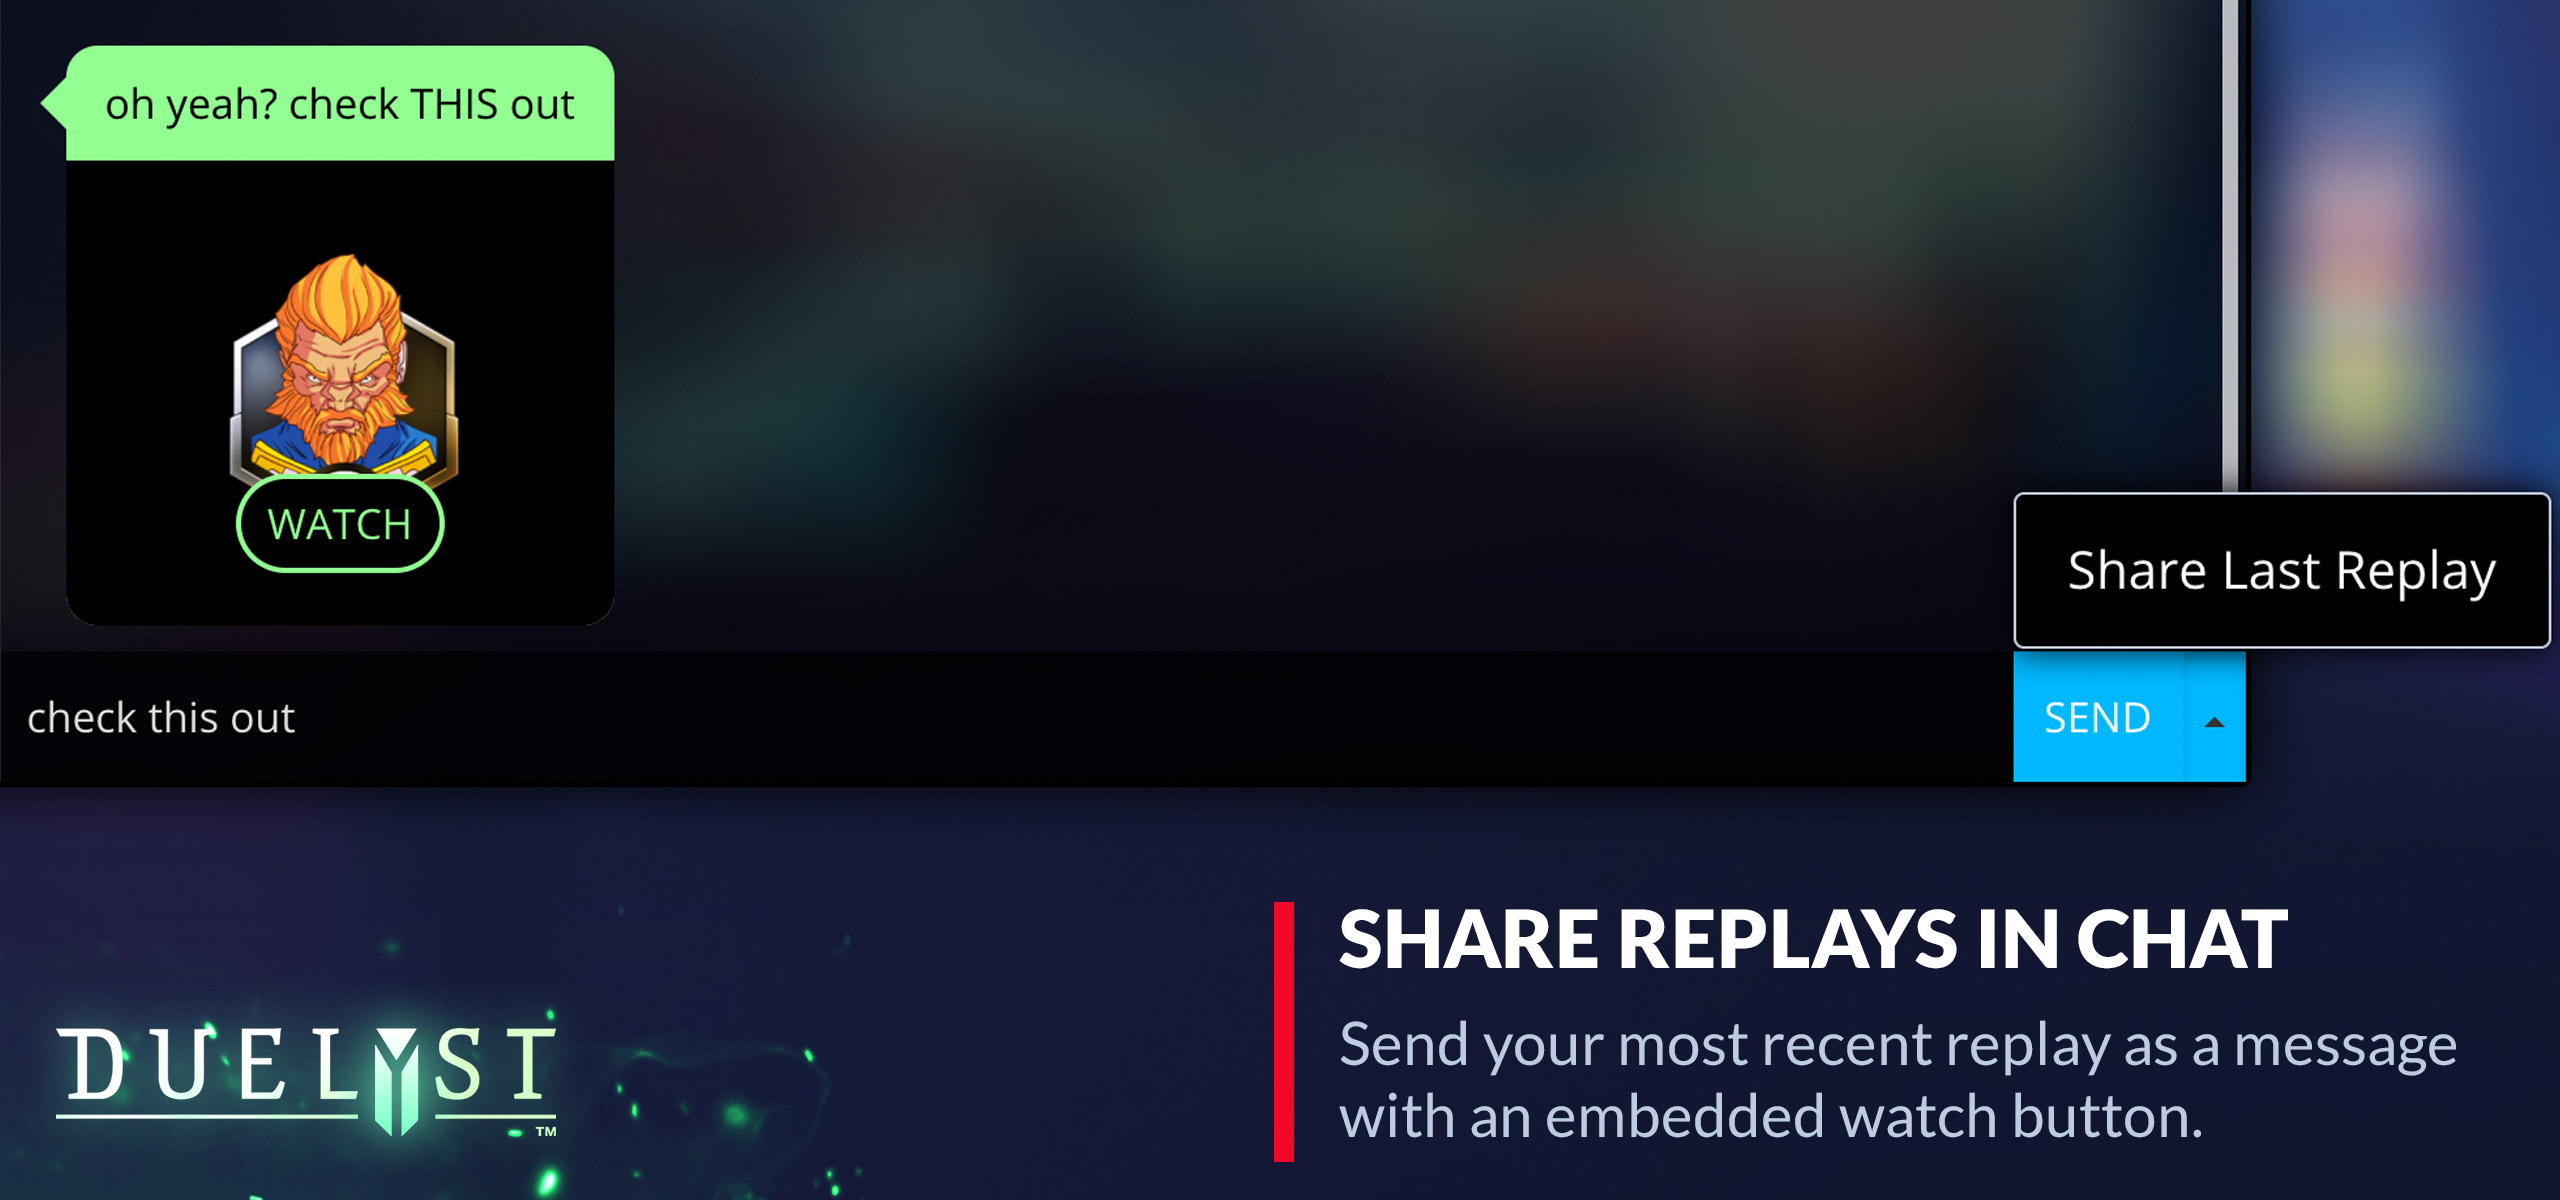 duelyst_august_share_replay